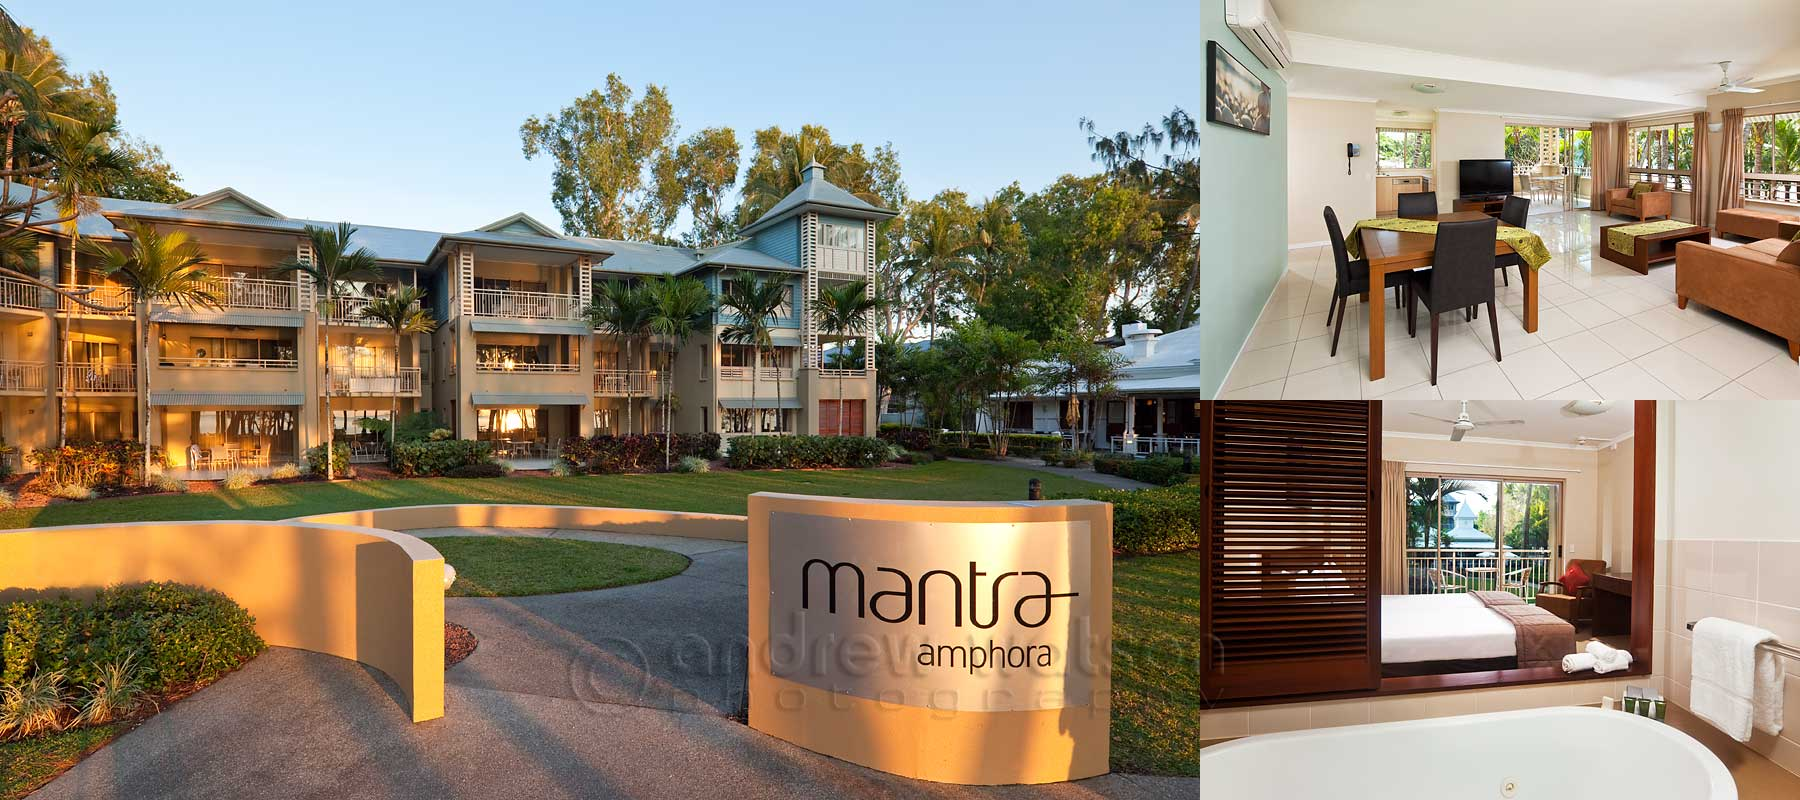 Resort photography - Mantra Amphora, Palm Cove